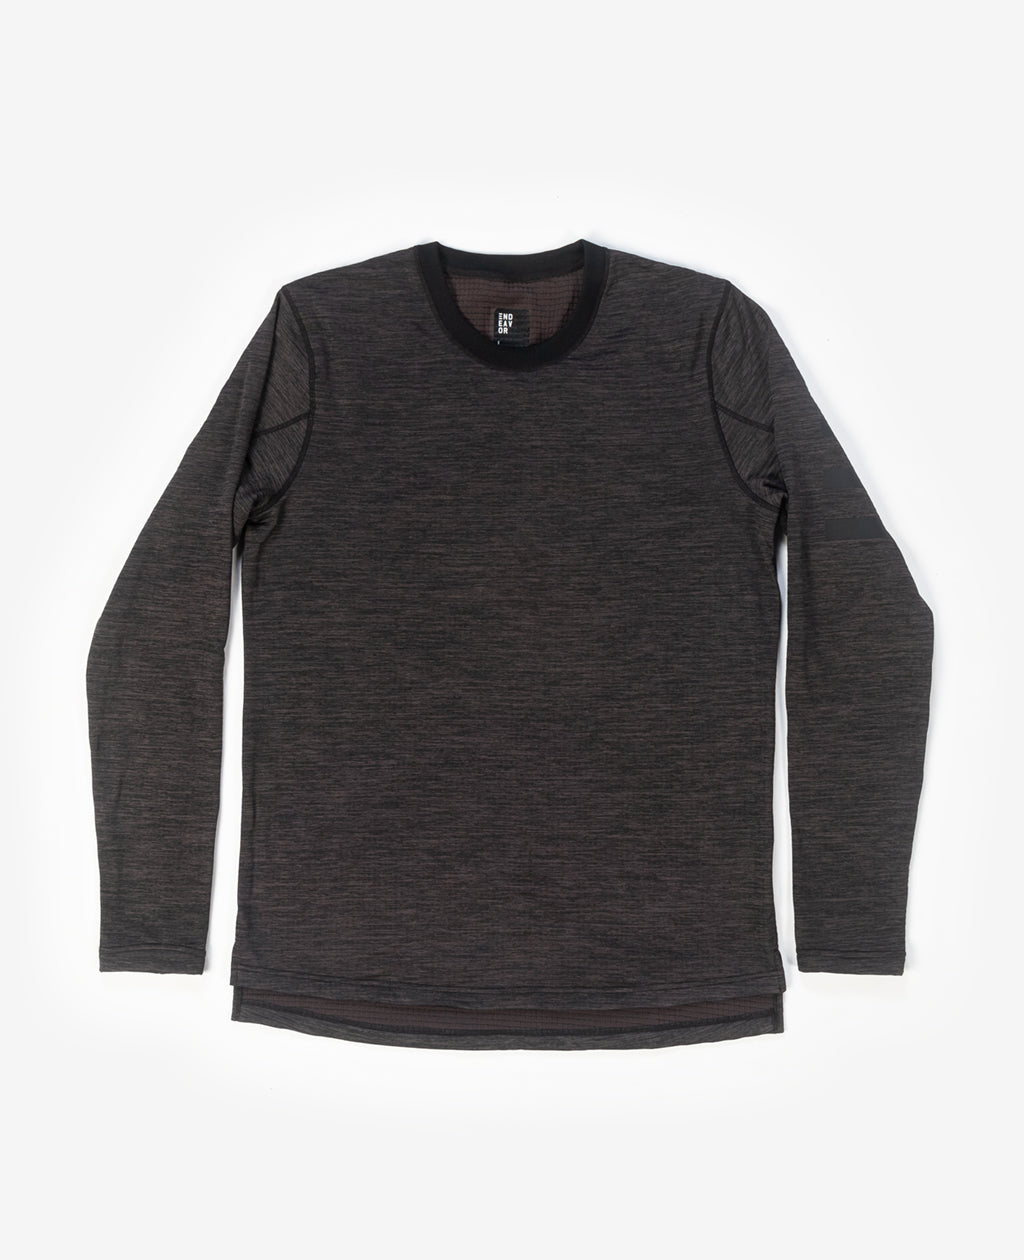 Endeavor Surplus Thermal Top